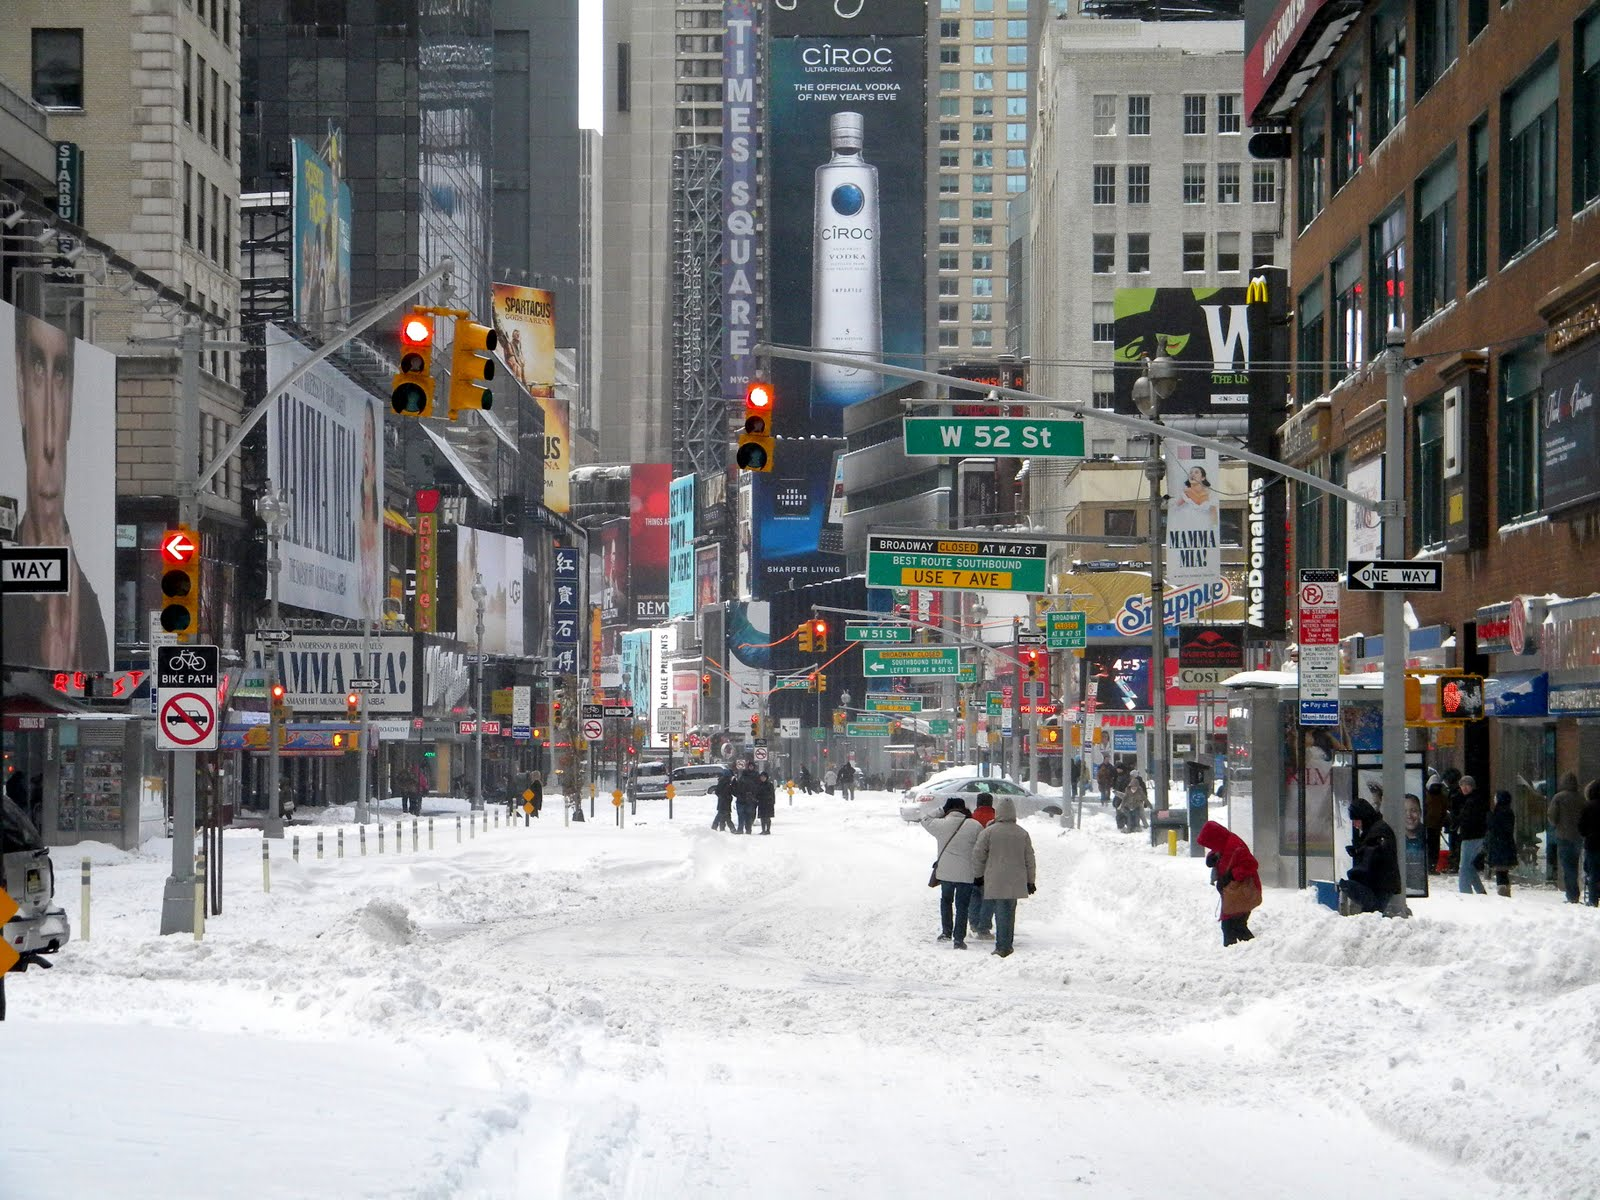 Winter Snow Storm New York City 12/26/10 Times Square